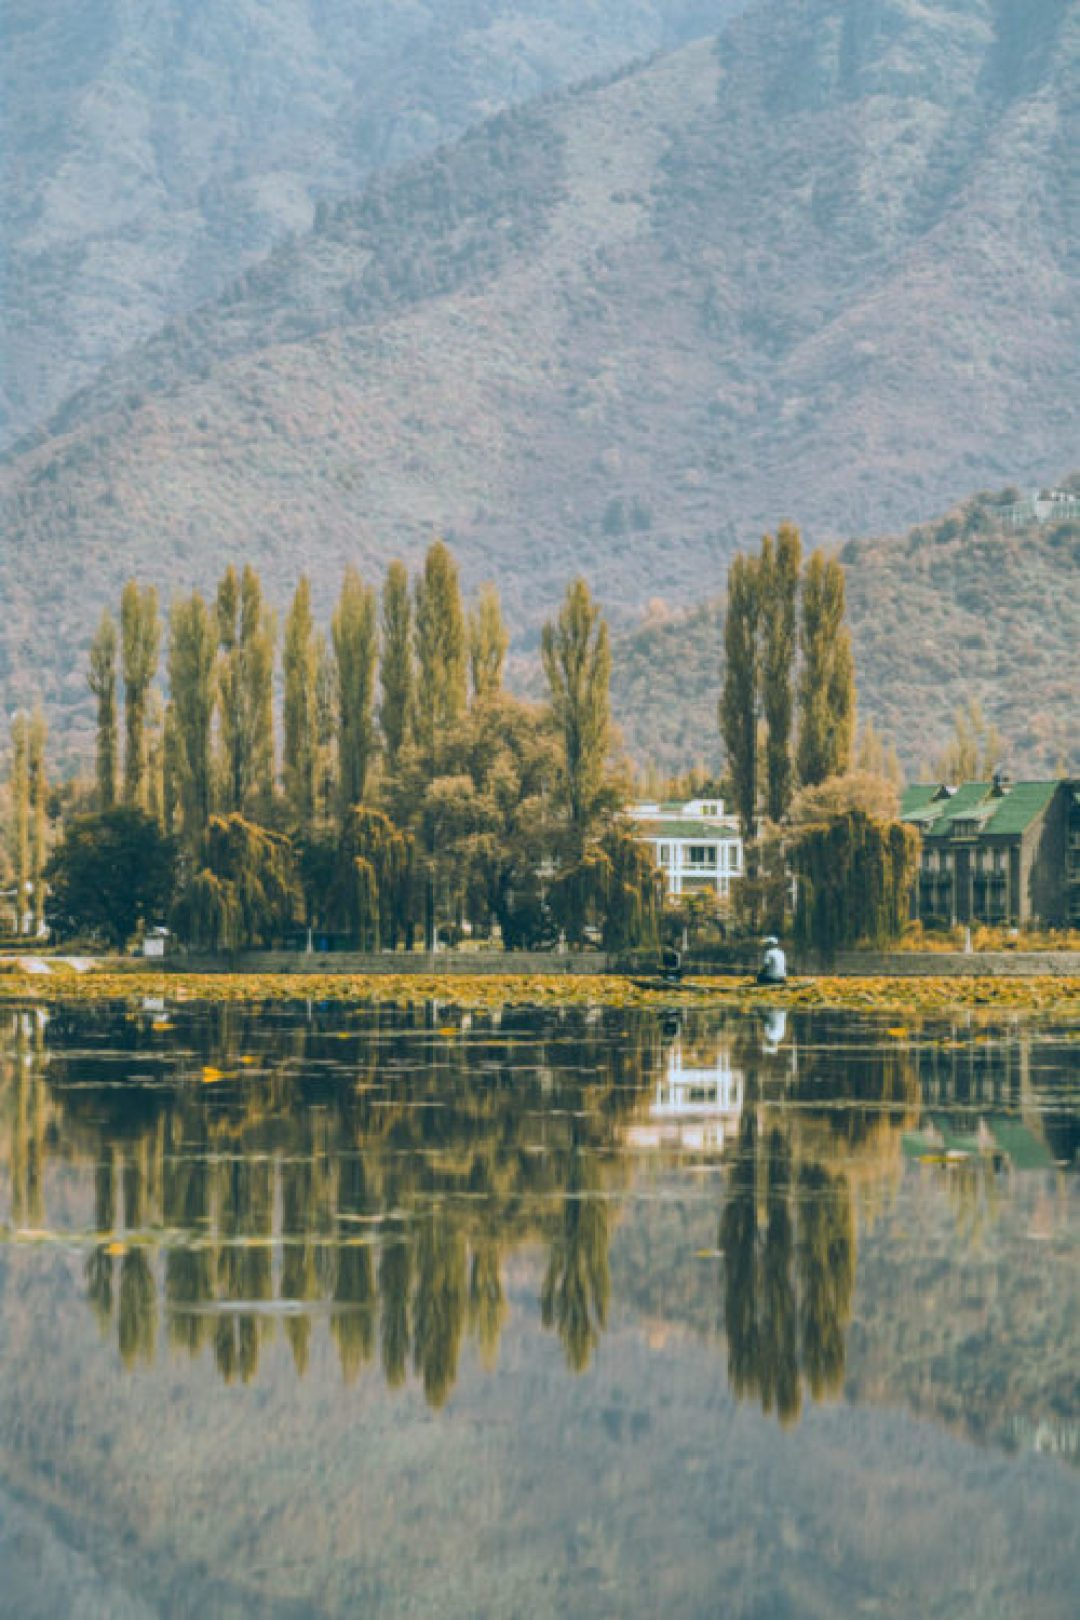 Reflections of Kashmir